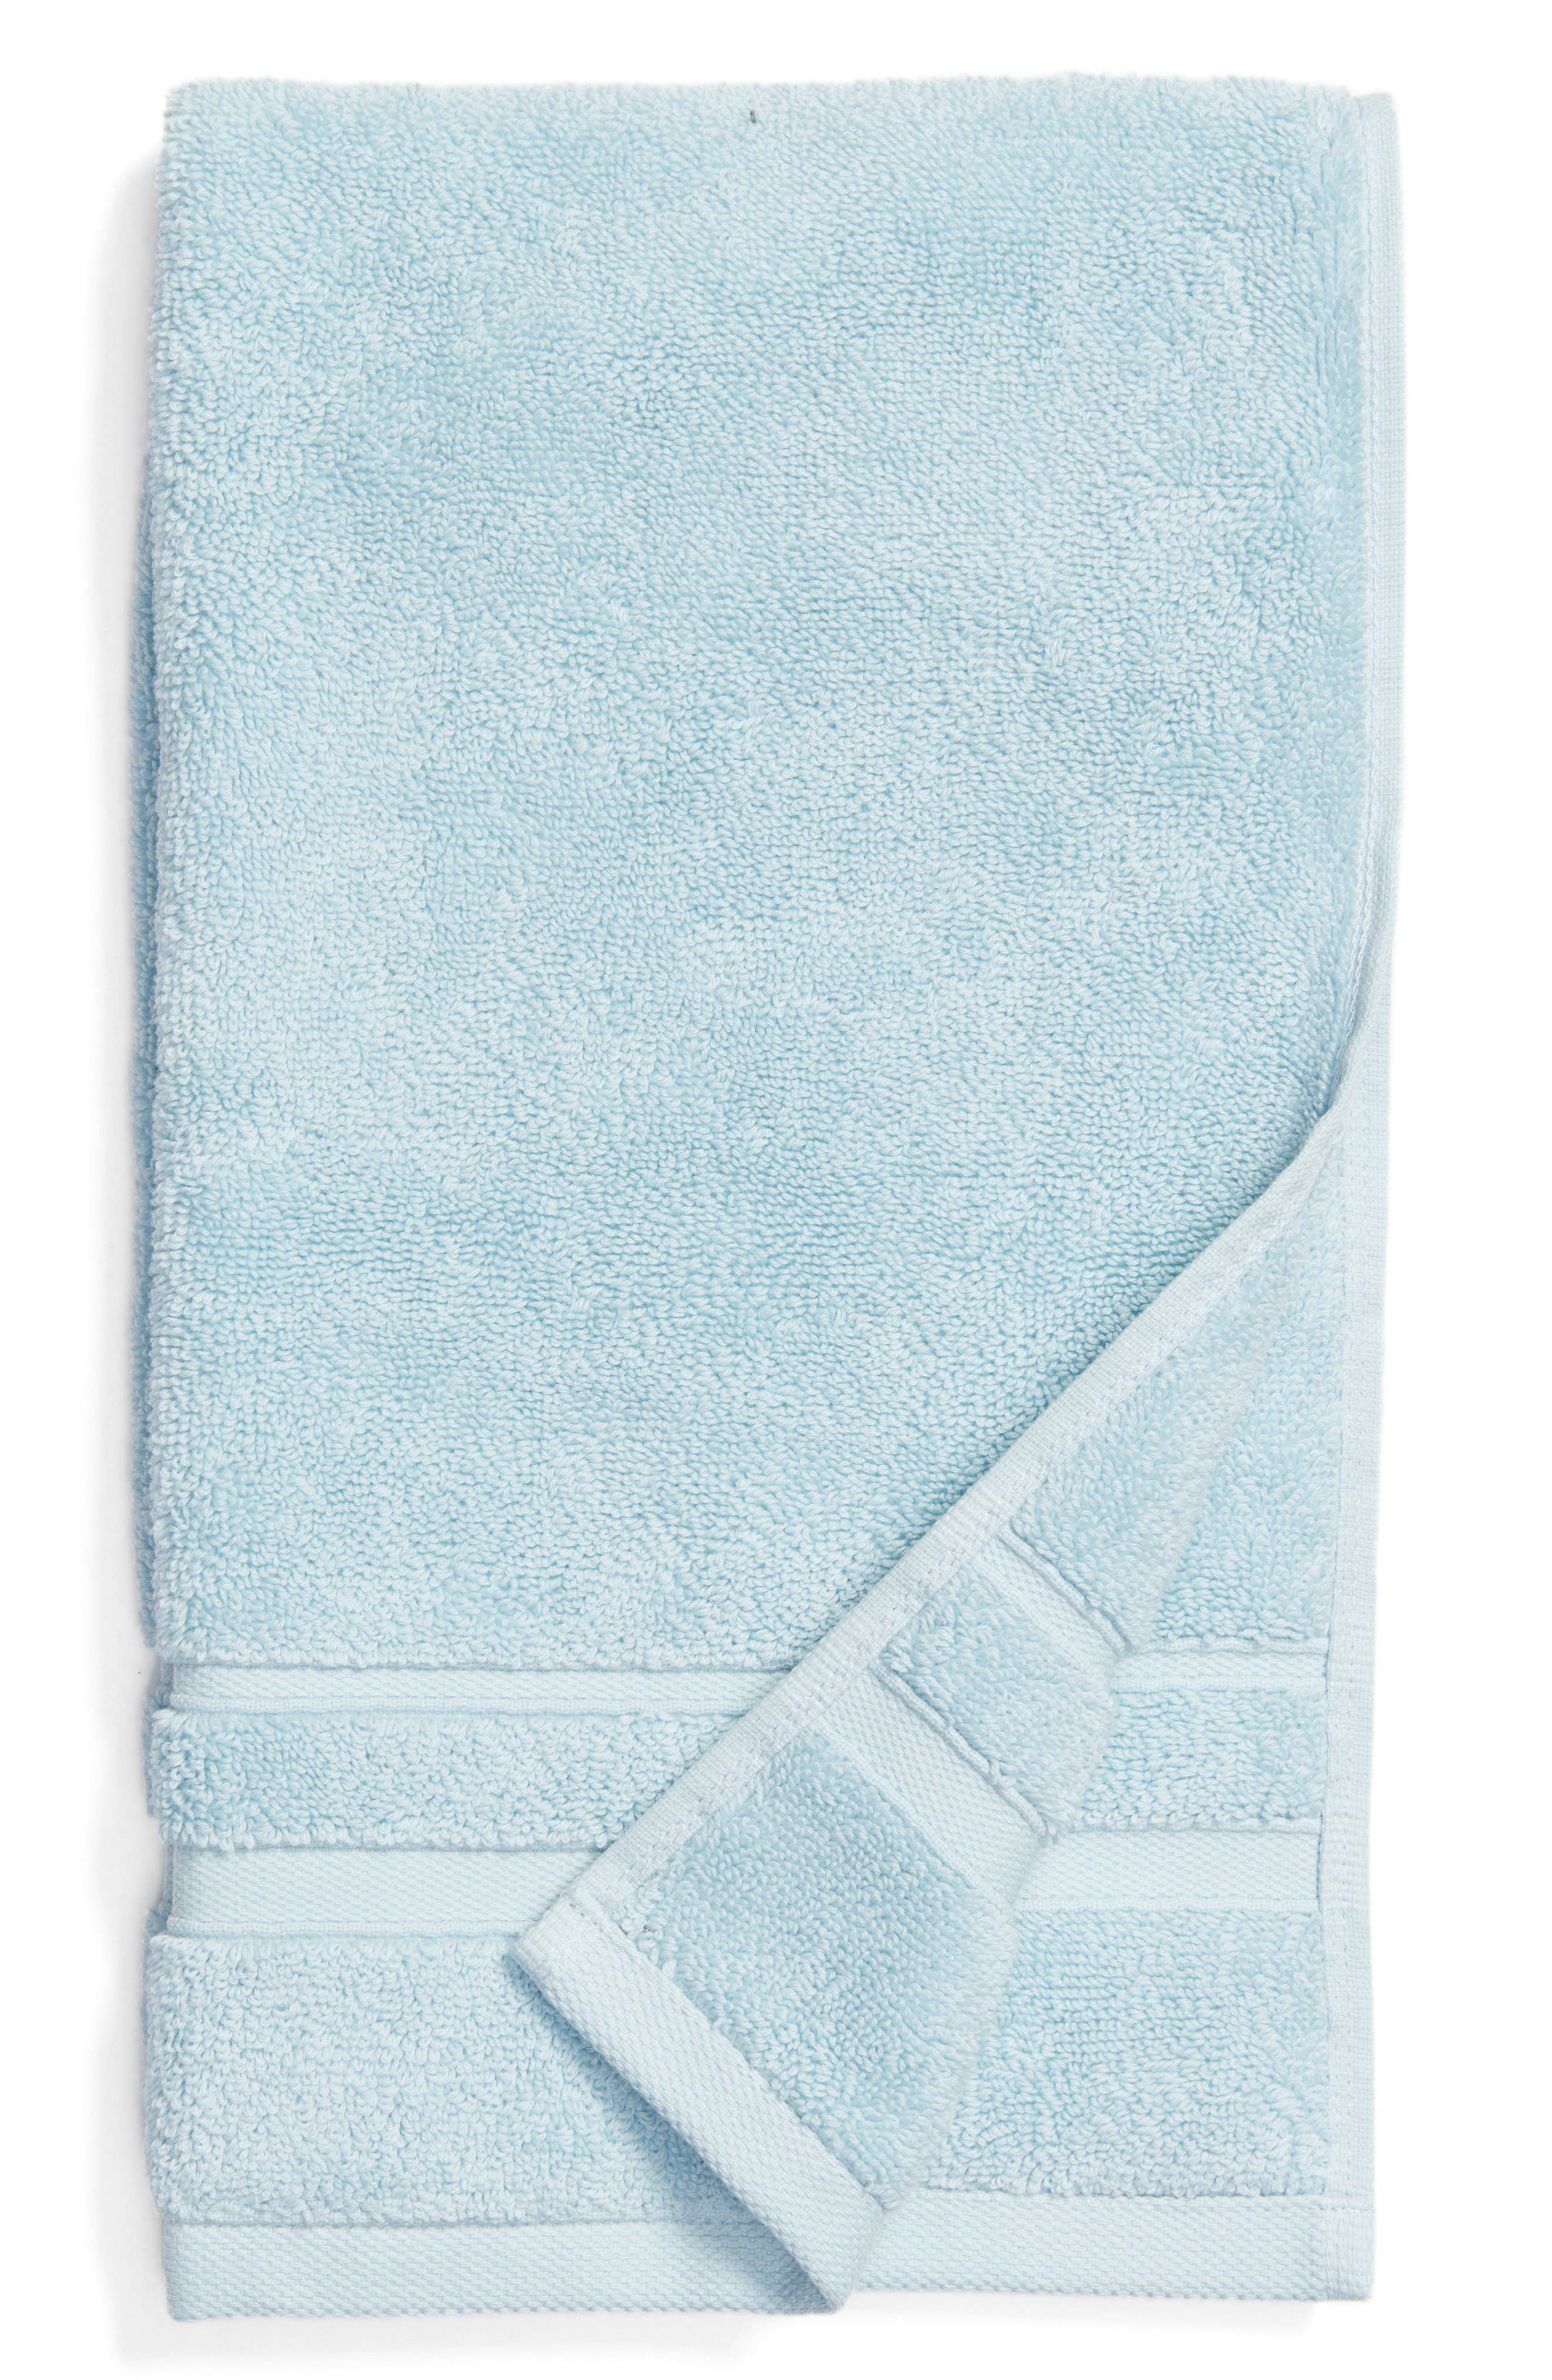 Studio 'Perennial' Combed Turkish Cotton Hand Towel,                             Main thumbnail 1, color,                             CHRYSTAL BLUE